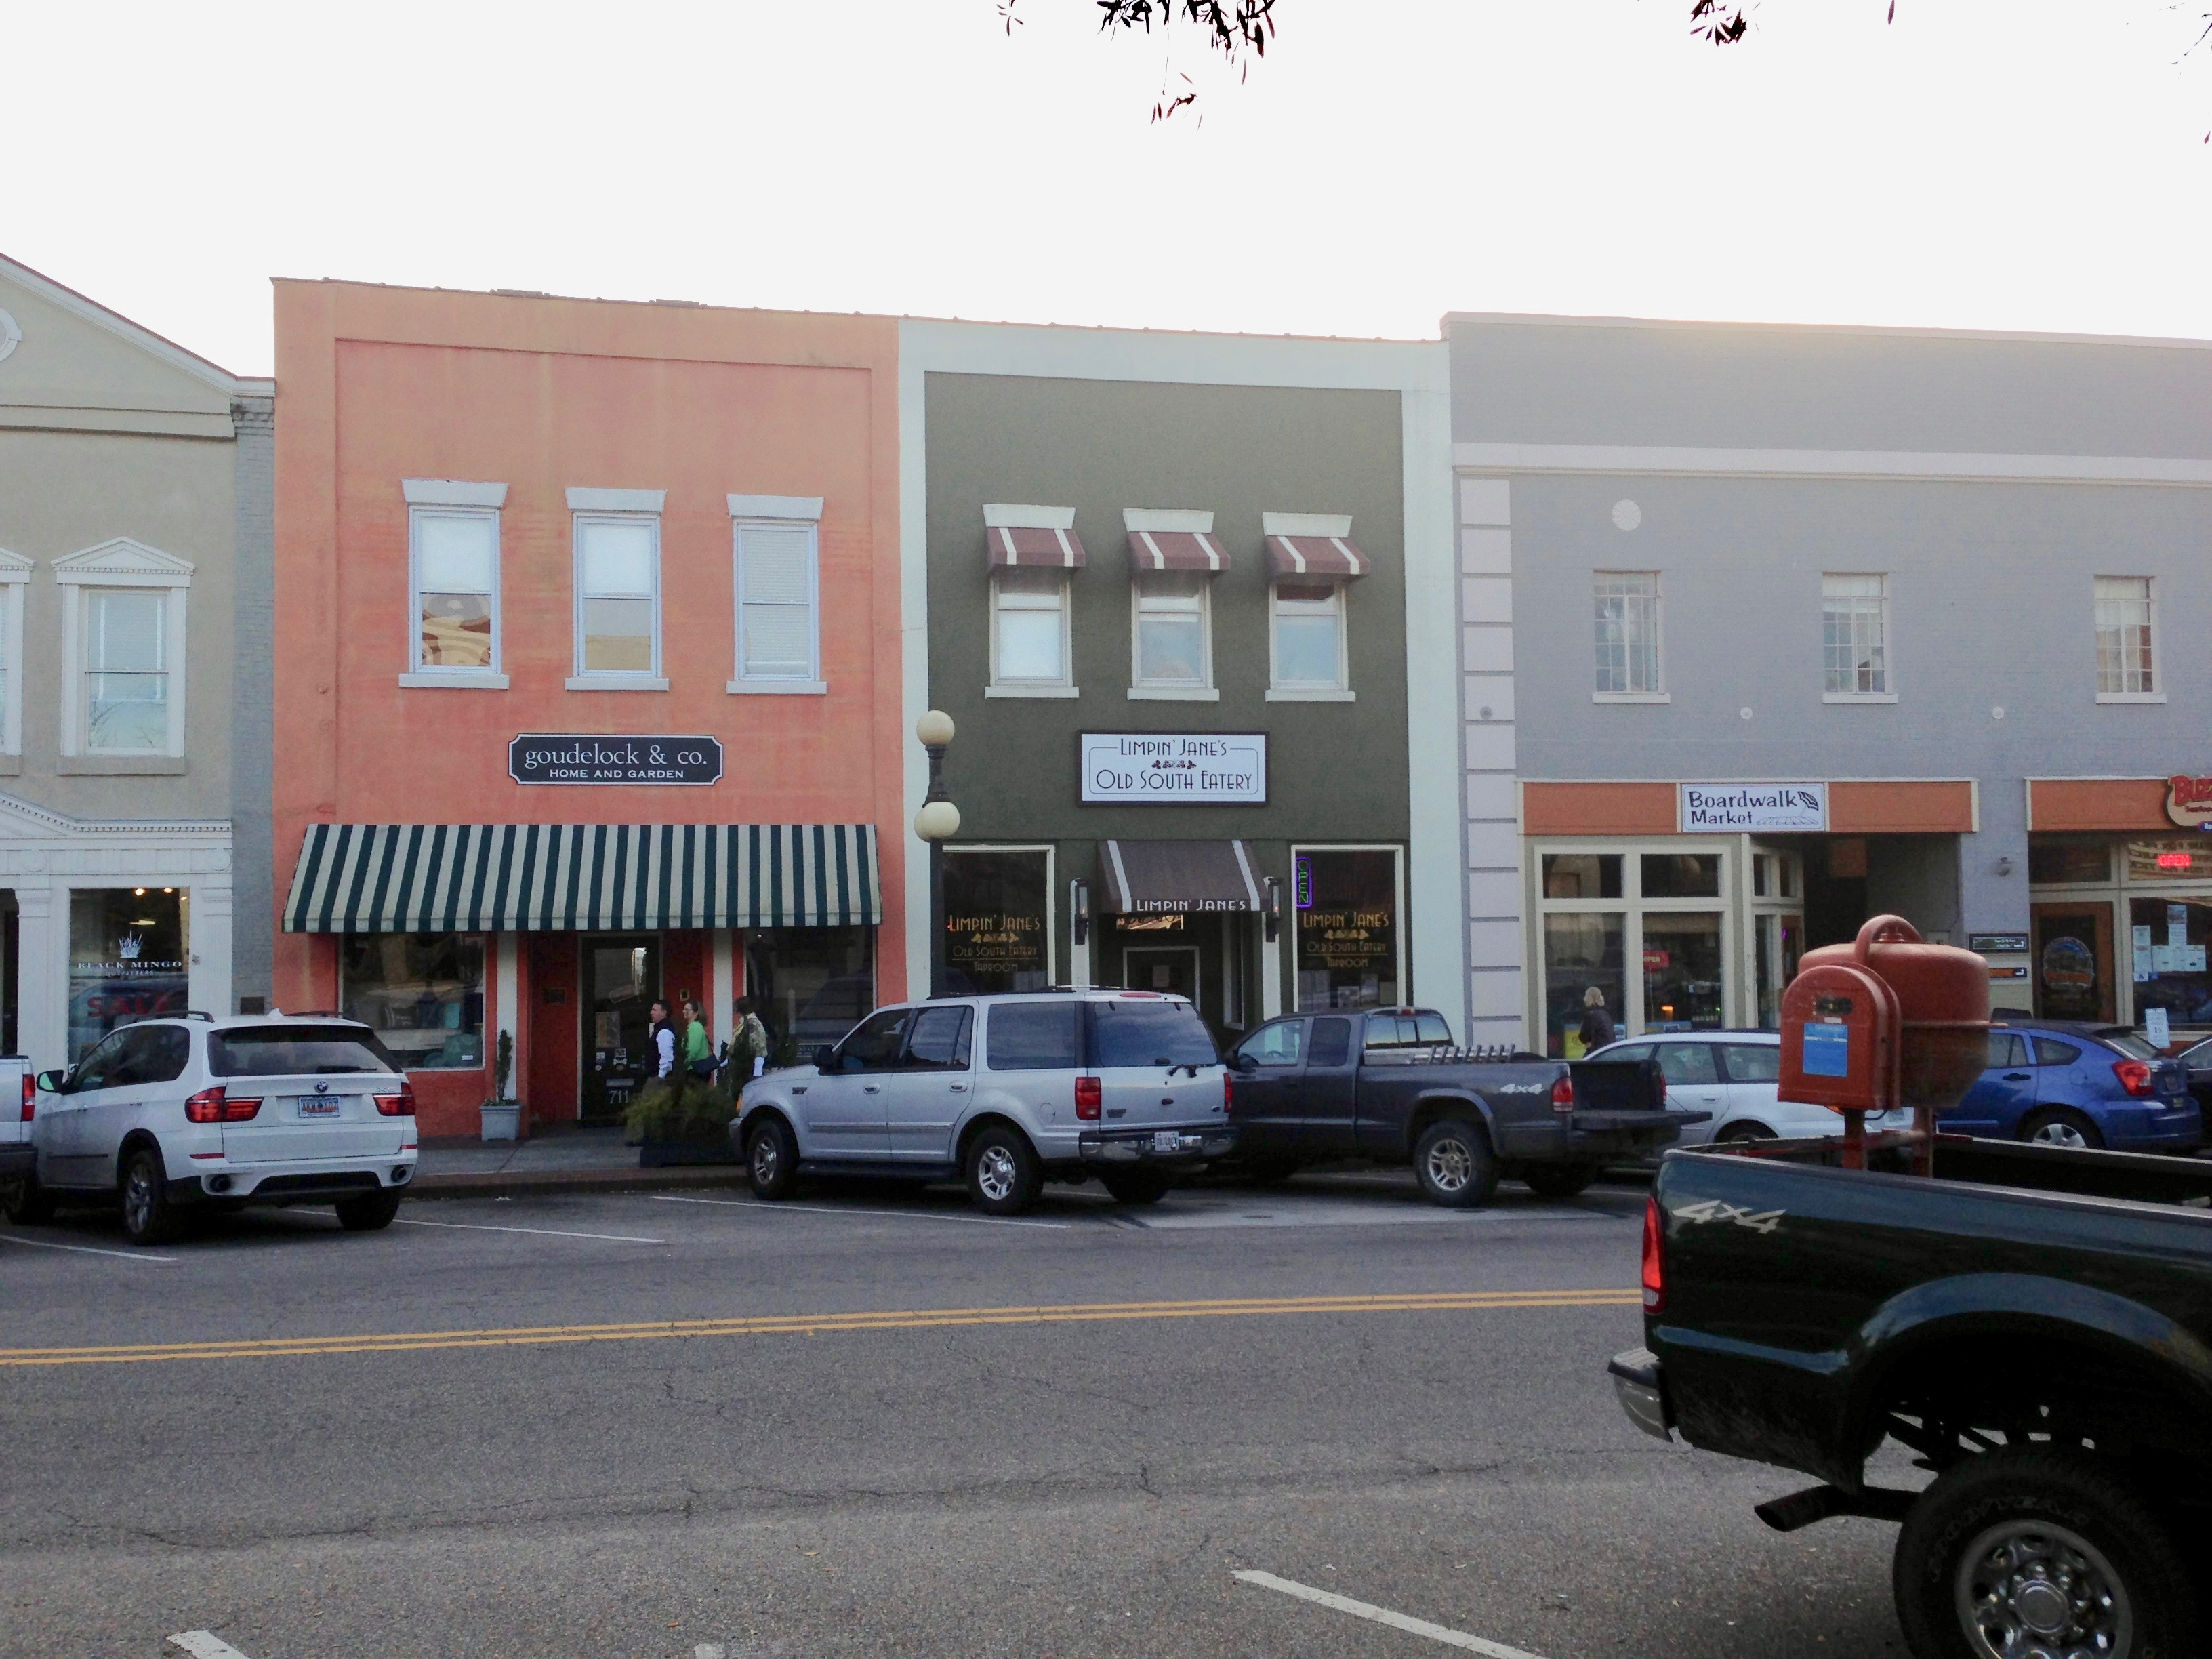 Front Street Georgetown South Carolina historic commercial buildings destroyed by fire in 2013by